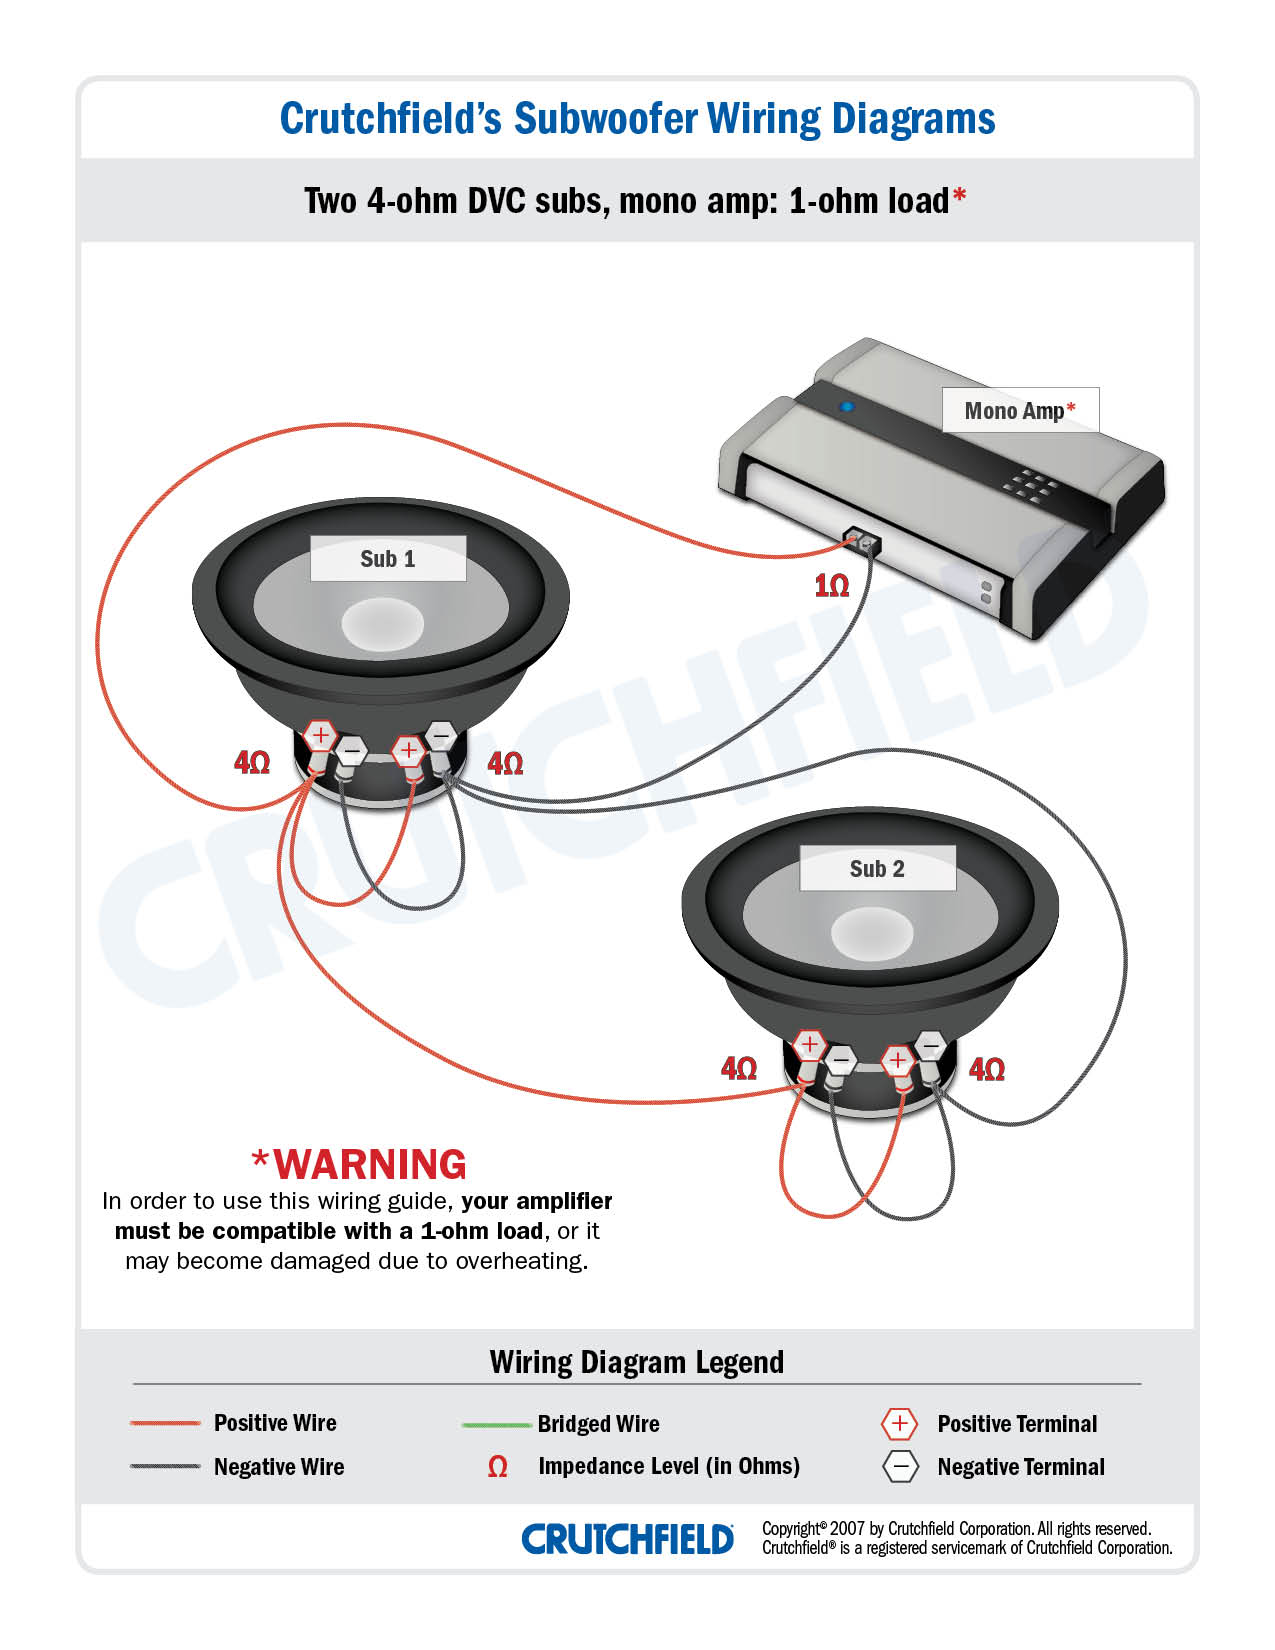 subwoofer wiring diagrams this diagram